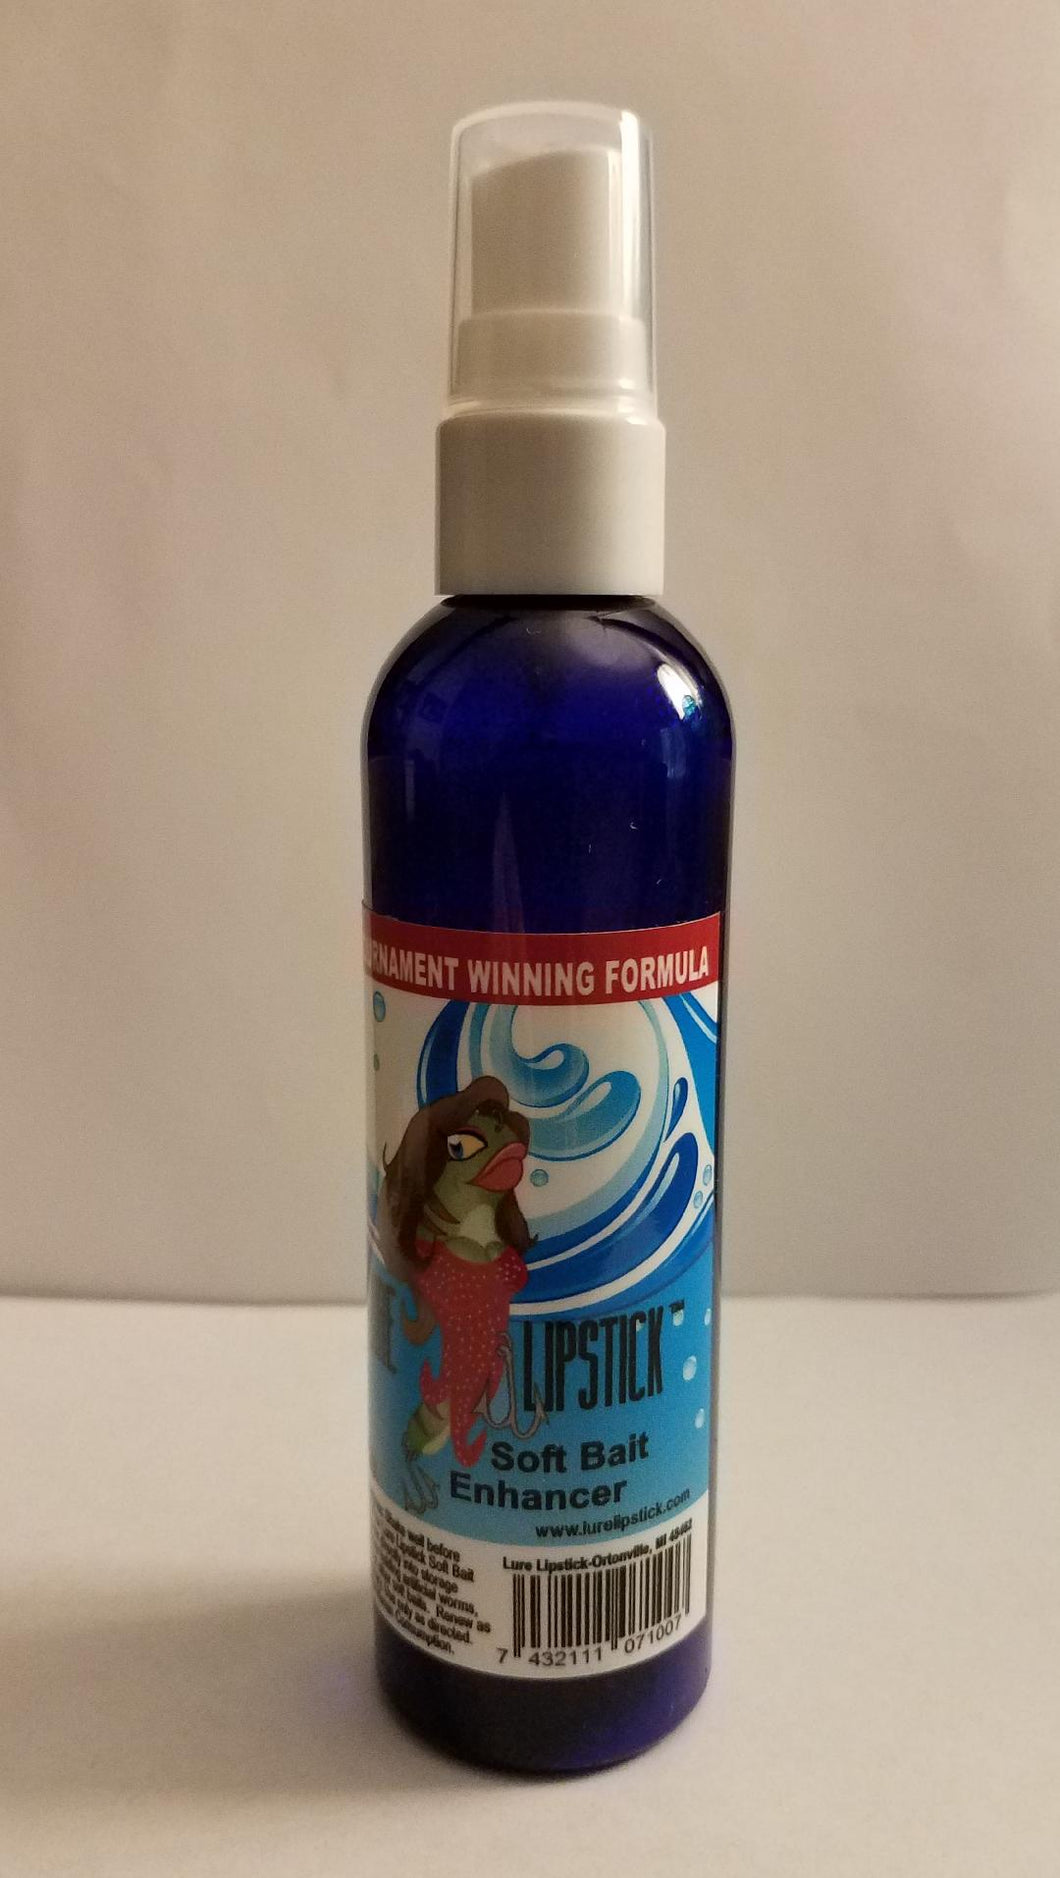 Lure Lipstick - Soft Bait Enhancer - 4oz Spray Bottle